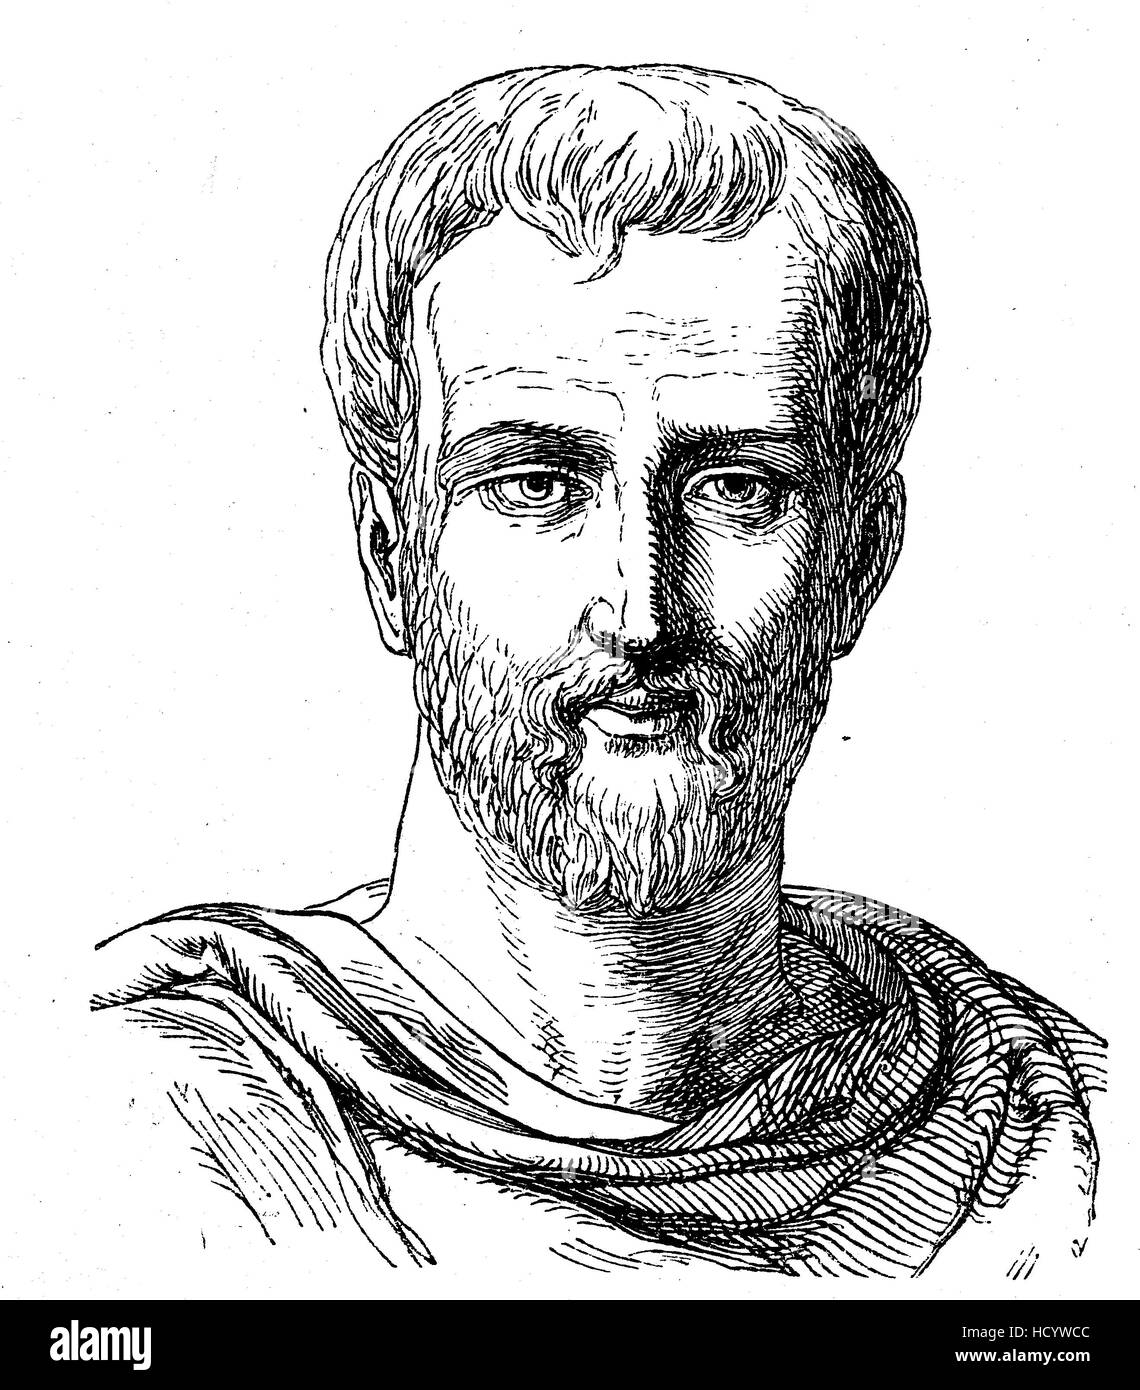 Titus Maccius Plautus, 254 BC - 184 BC, Plautus, a Roman playwright of the Old Latin period, the story of the ancient - Stock Image